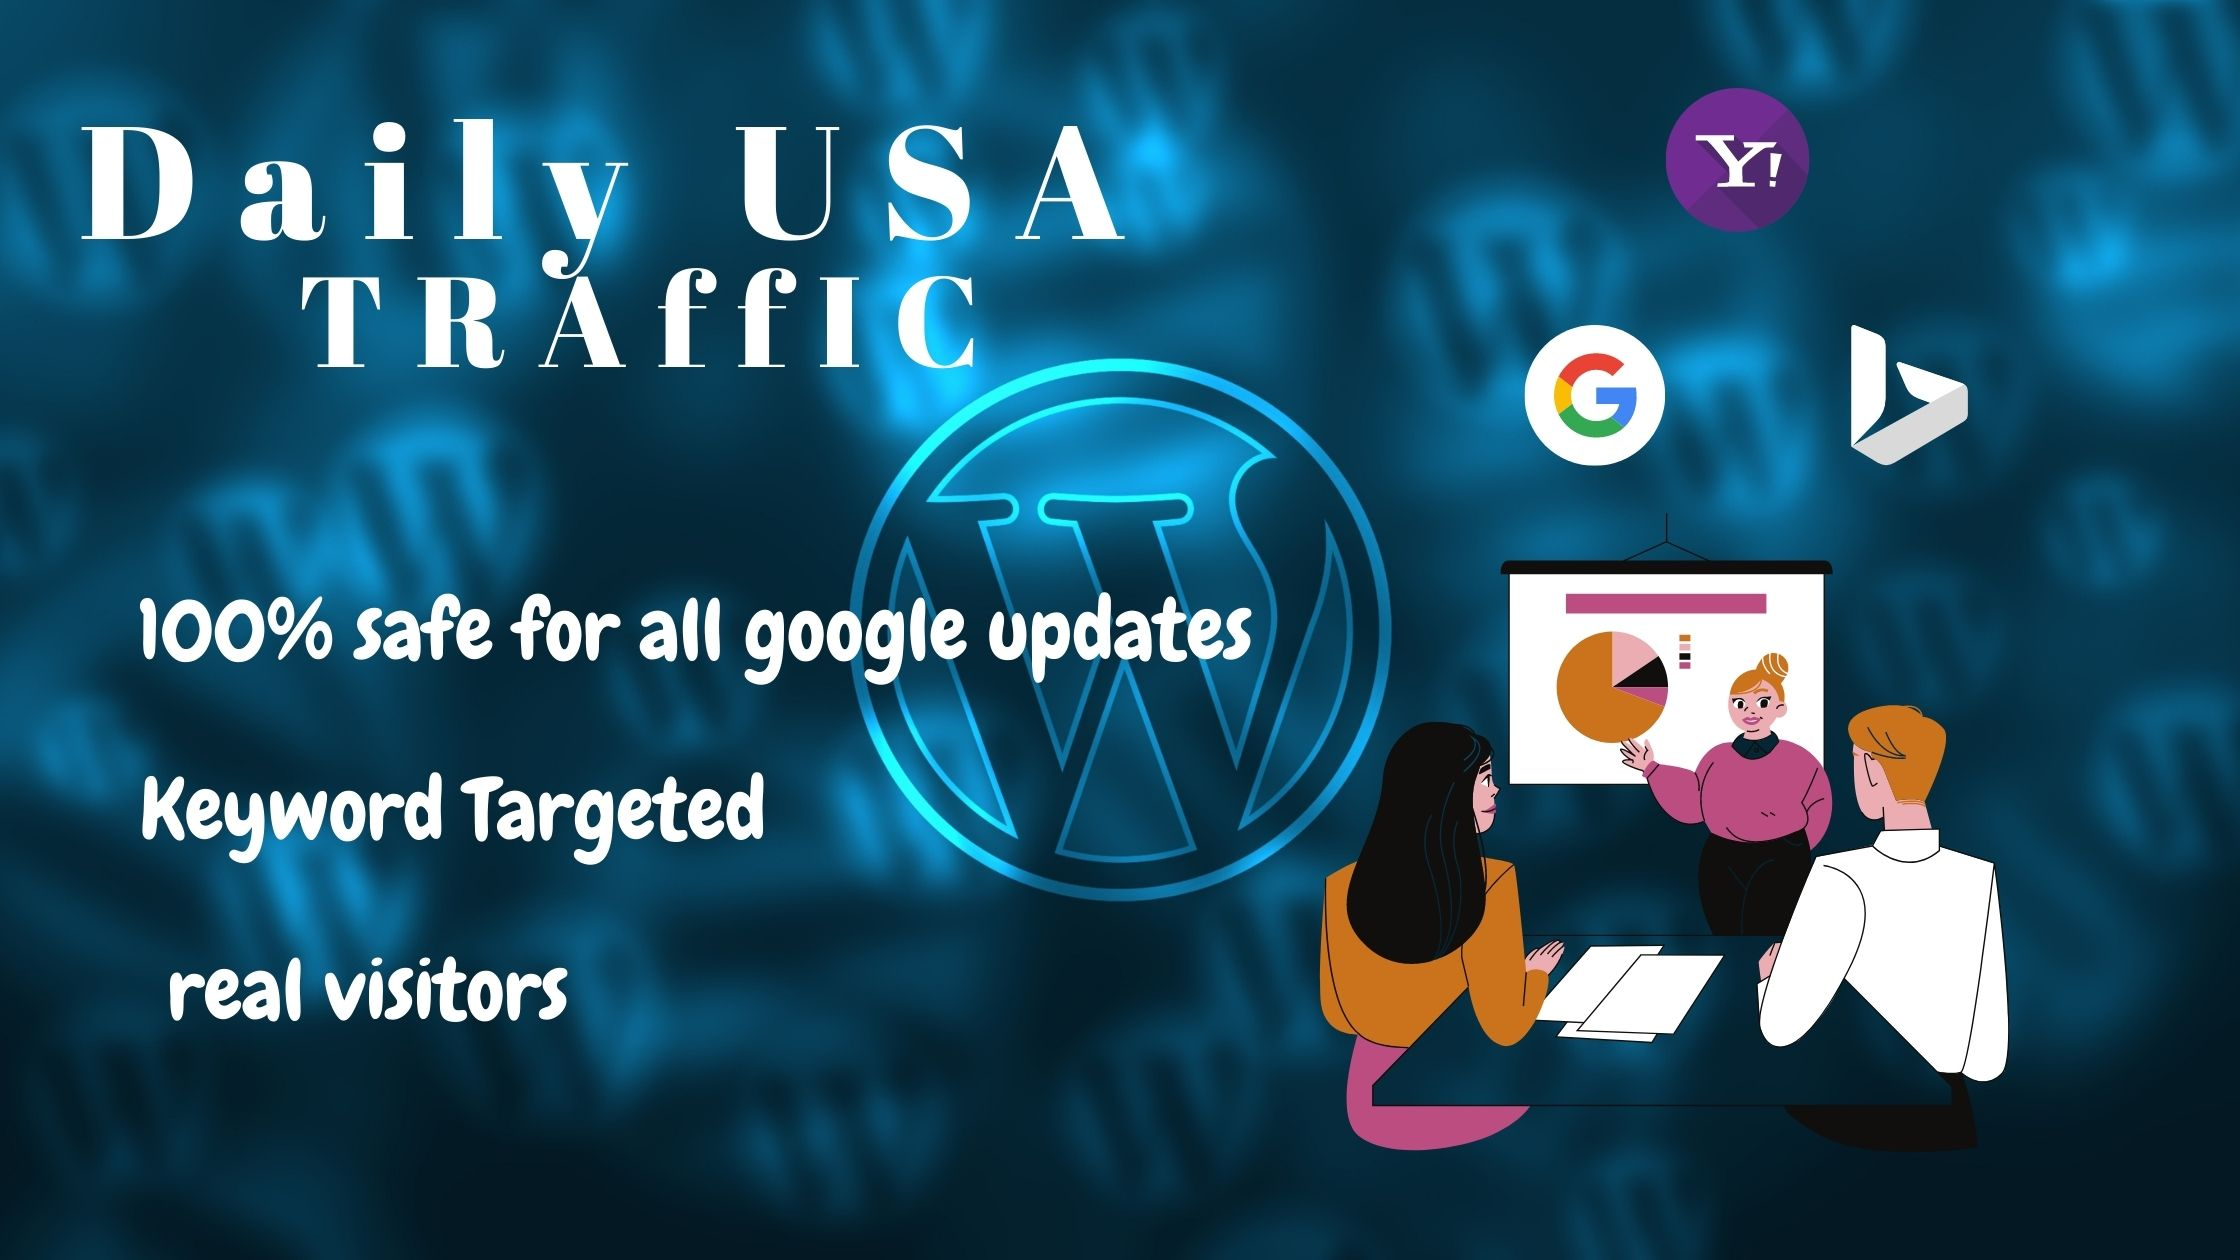 Drive Daily usa target traffic for your business